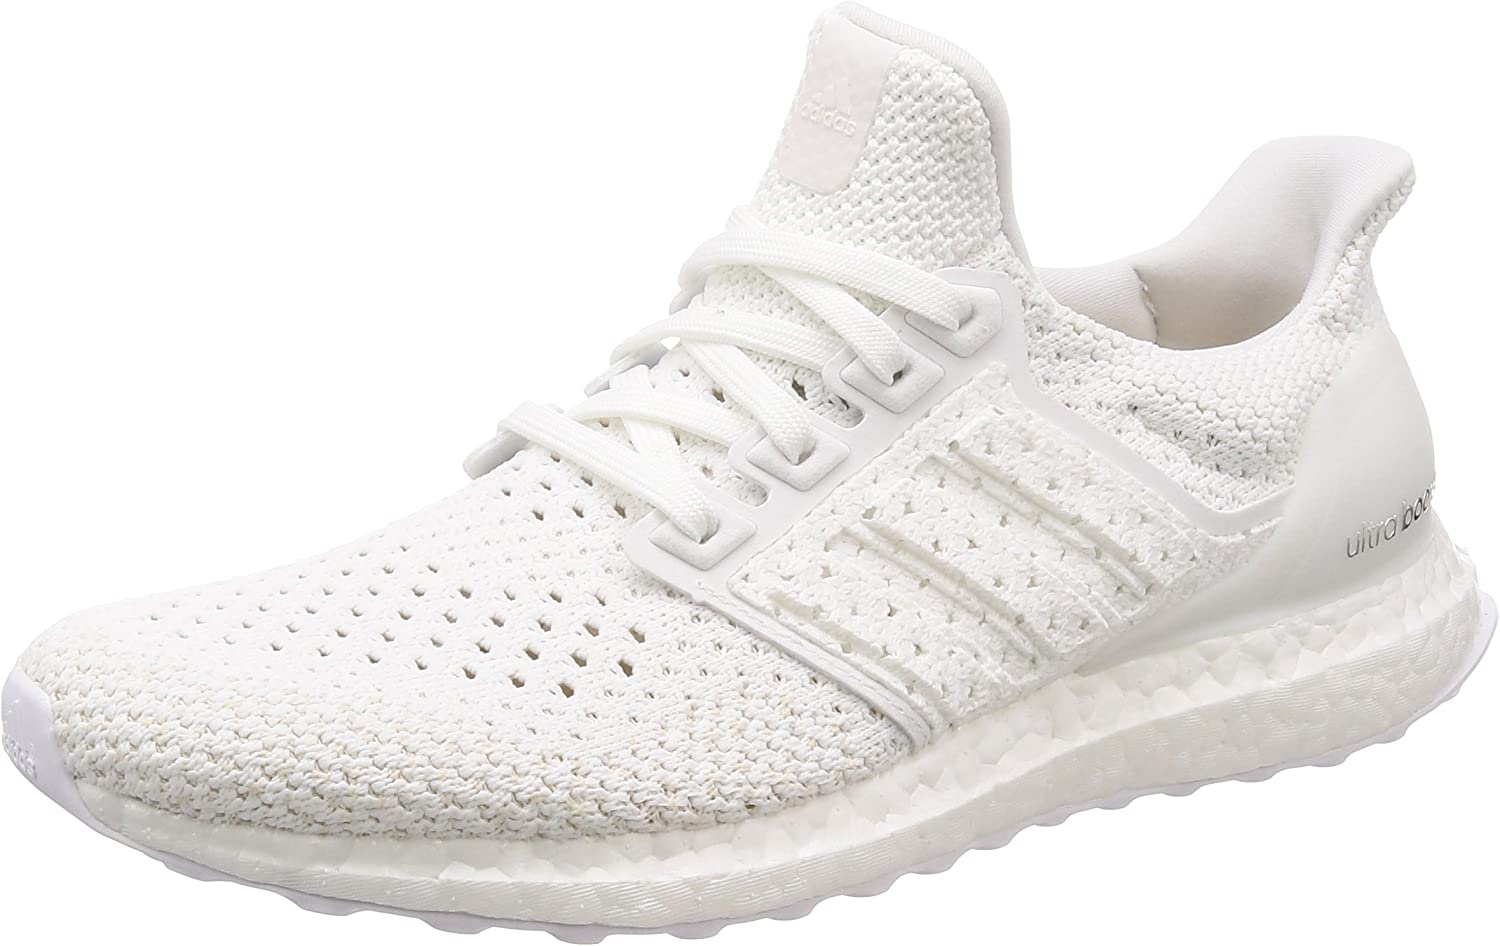 Adidas Ultra Boost Clima White Brown